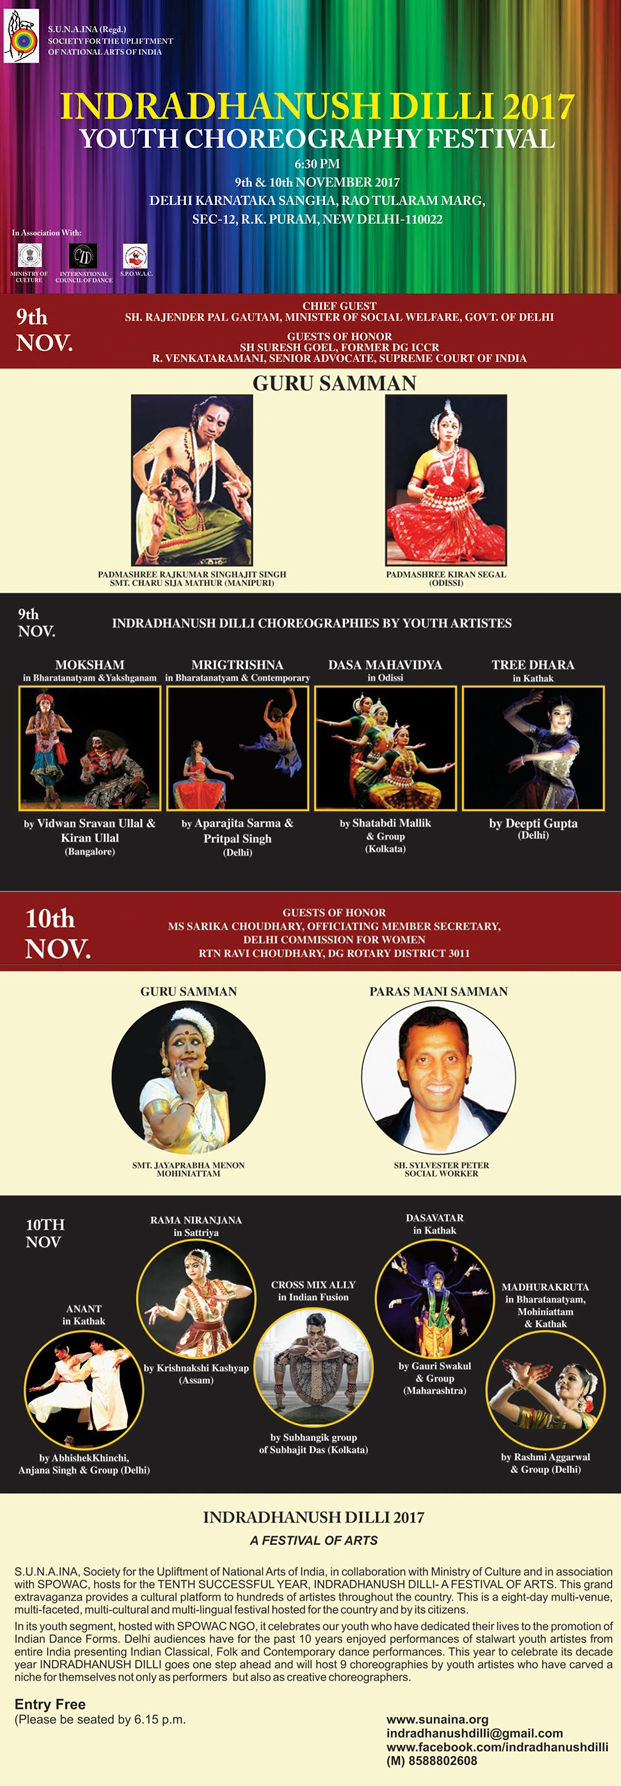 INDRADHANUSH DILLI 2017 - A NATIONAL FESTIVAL OF ARTS